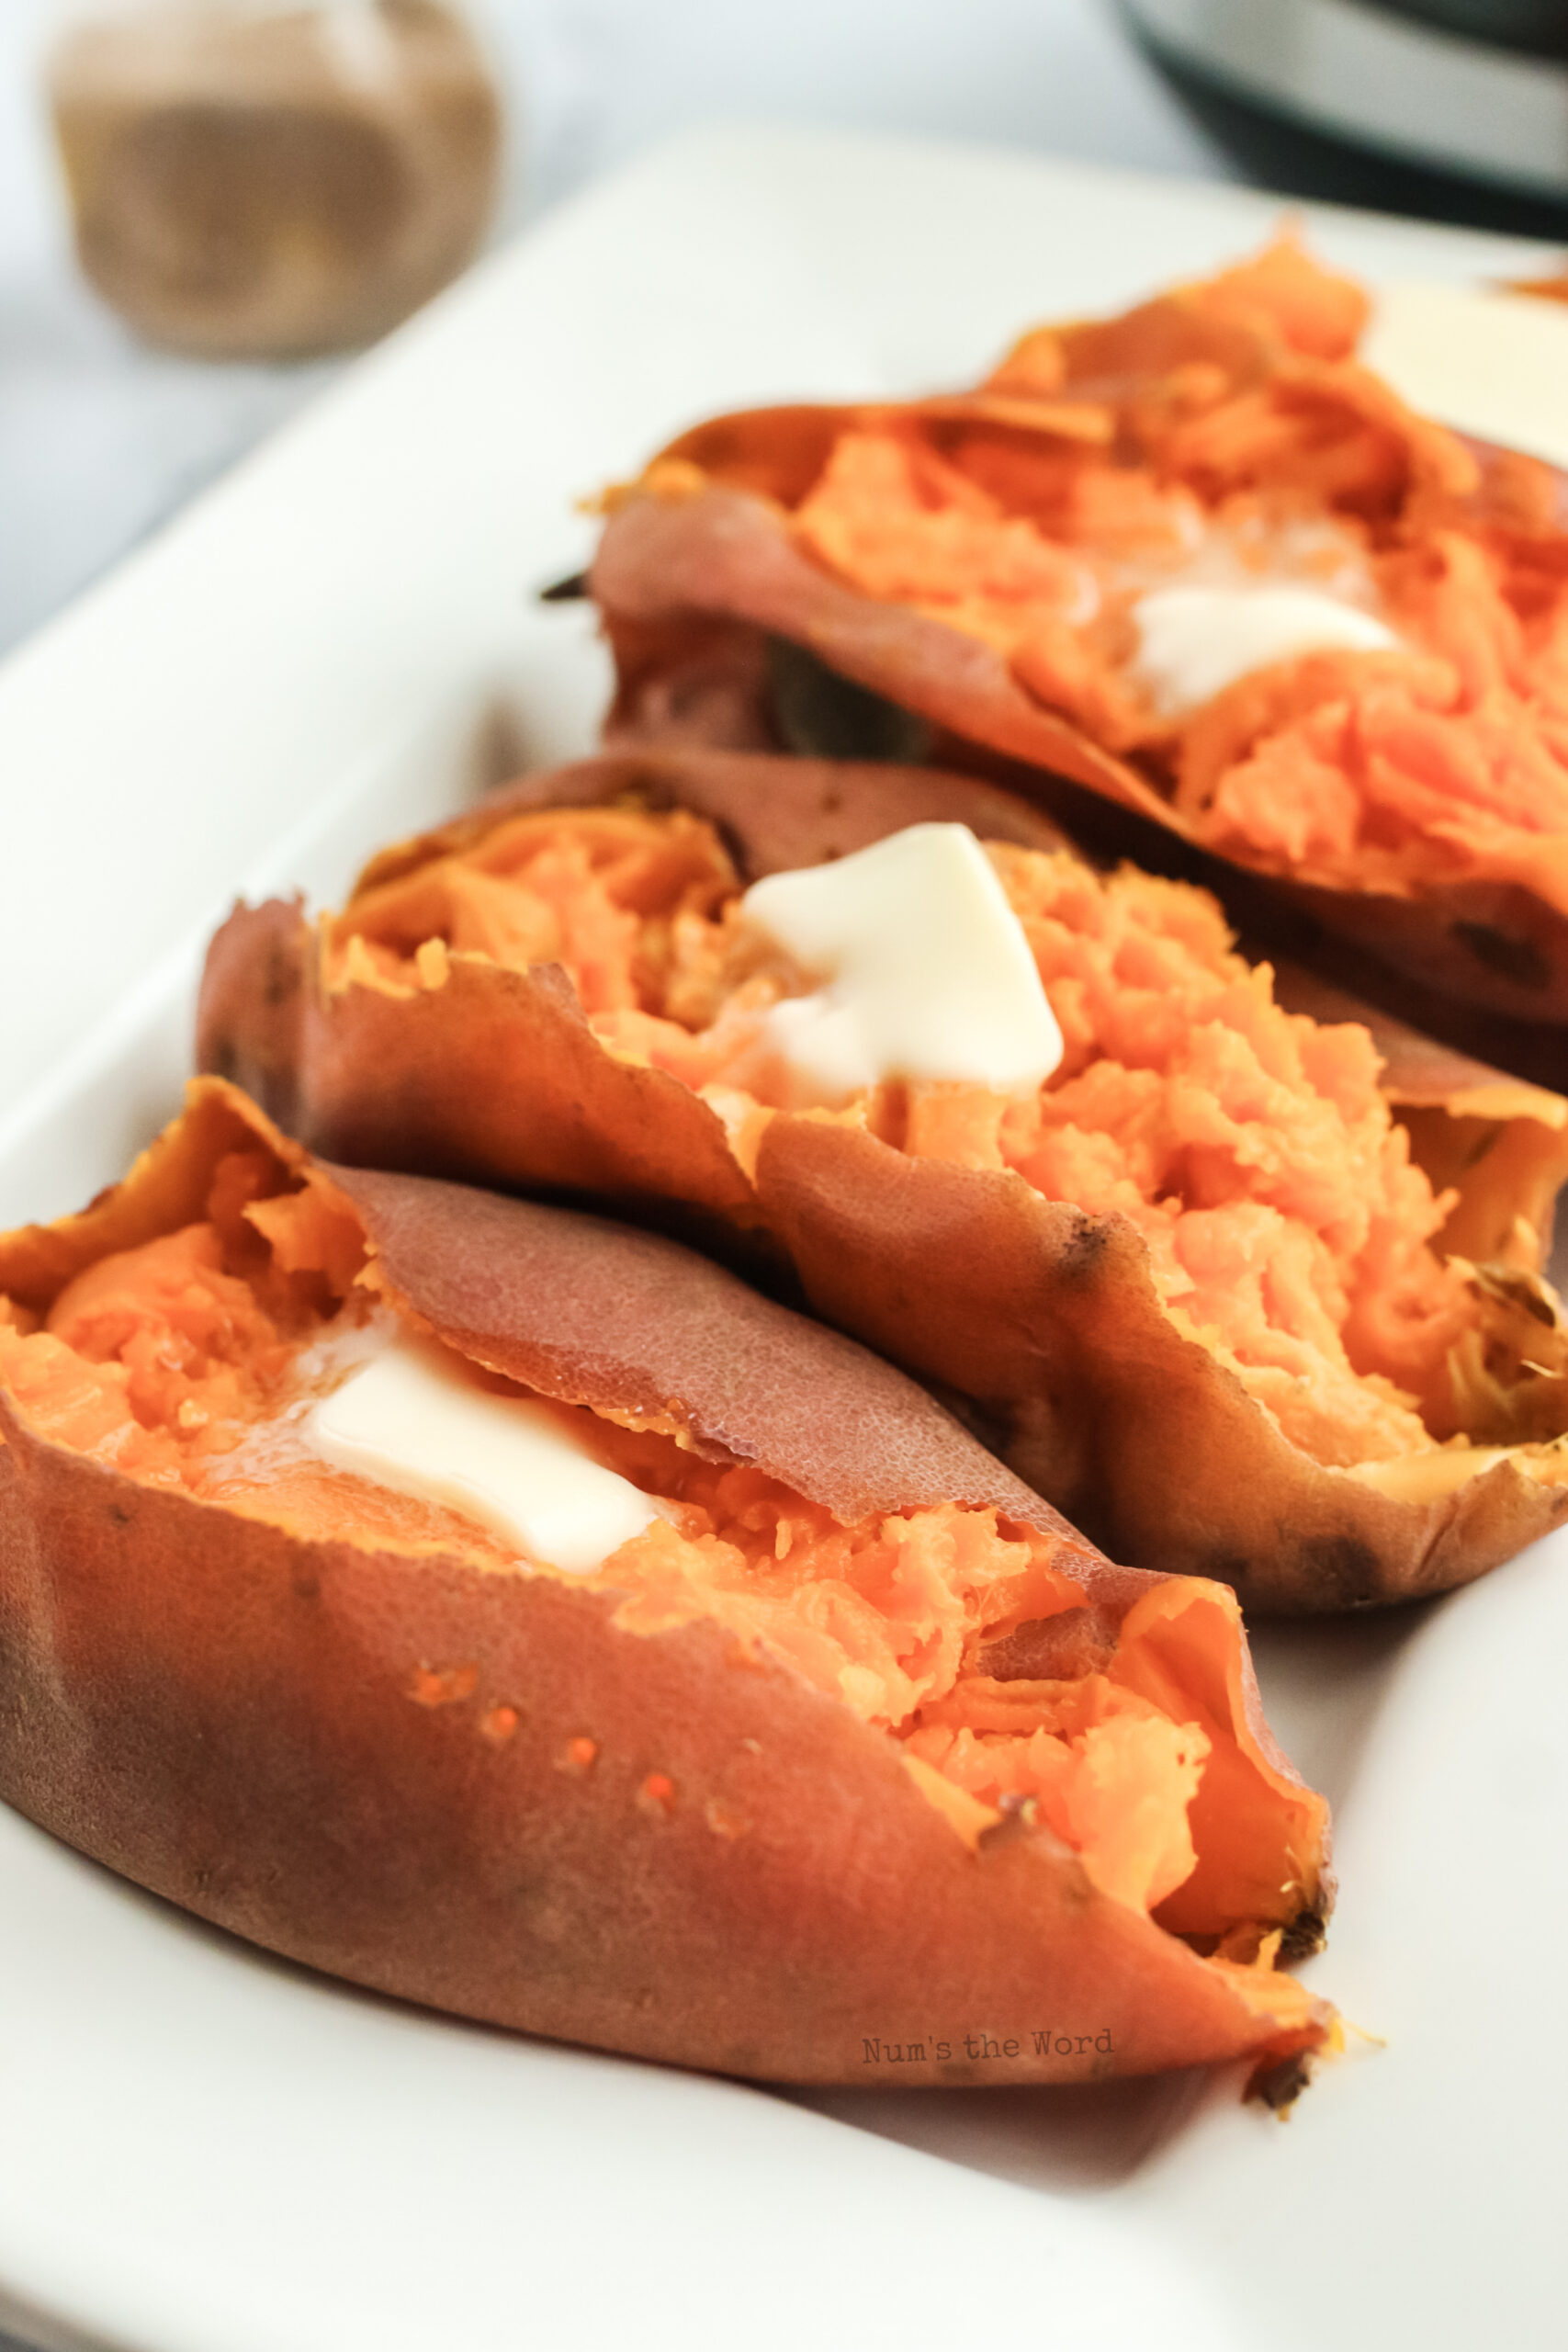 3 sweet potatoes with butter dolloped on top, side view angle